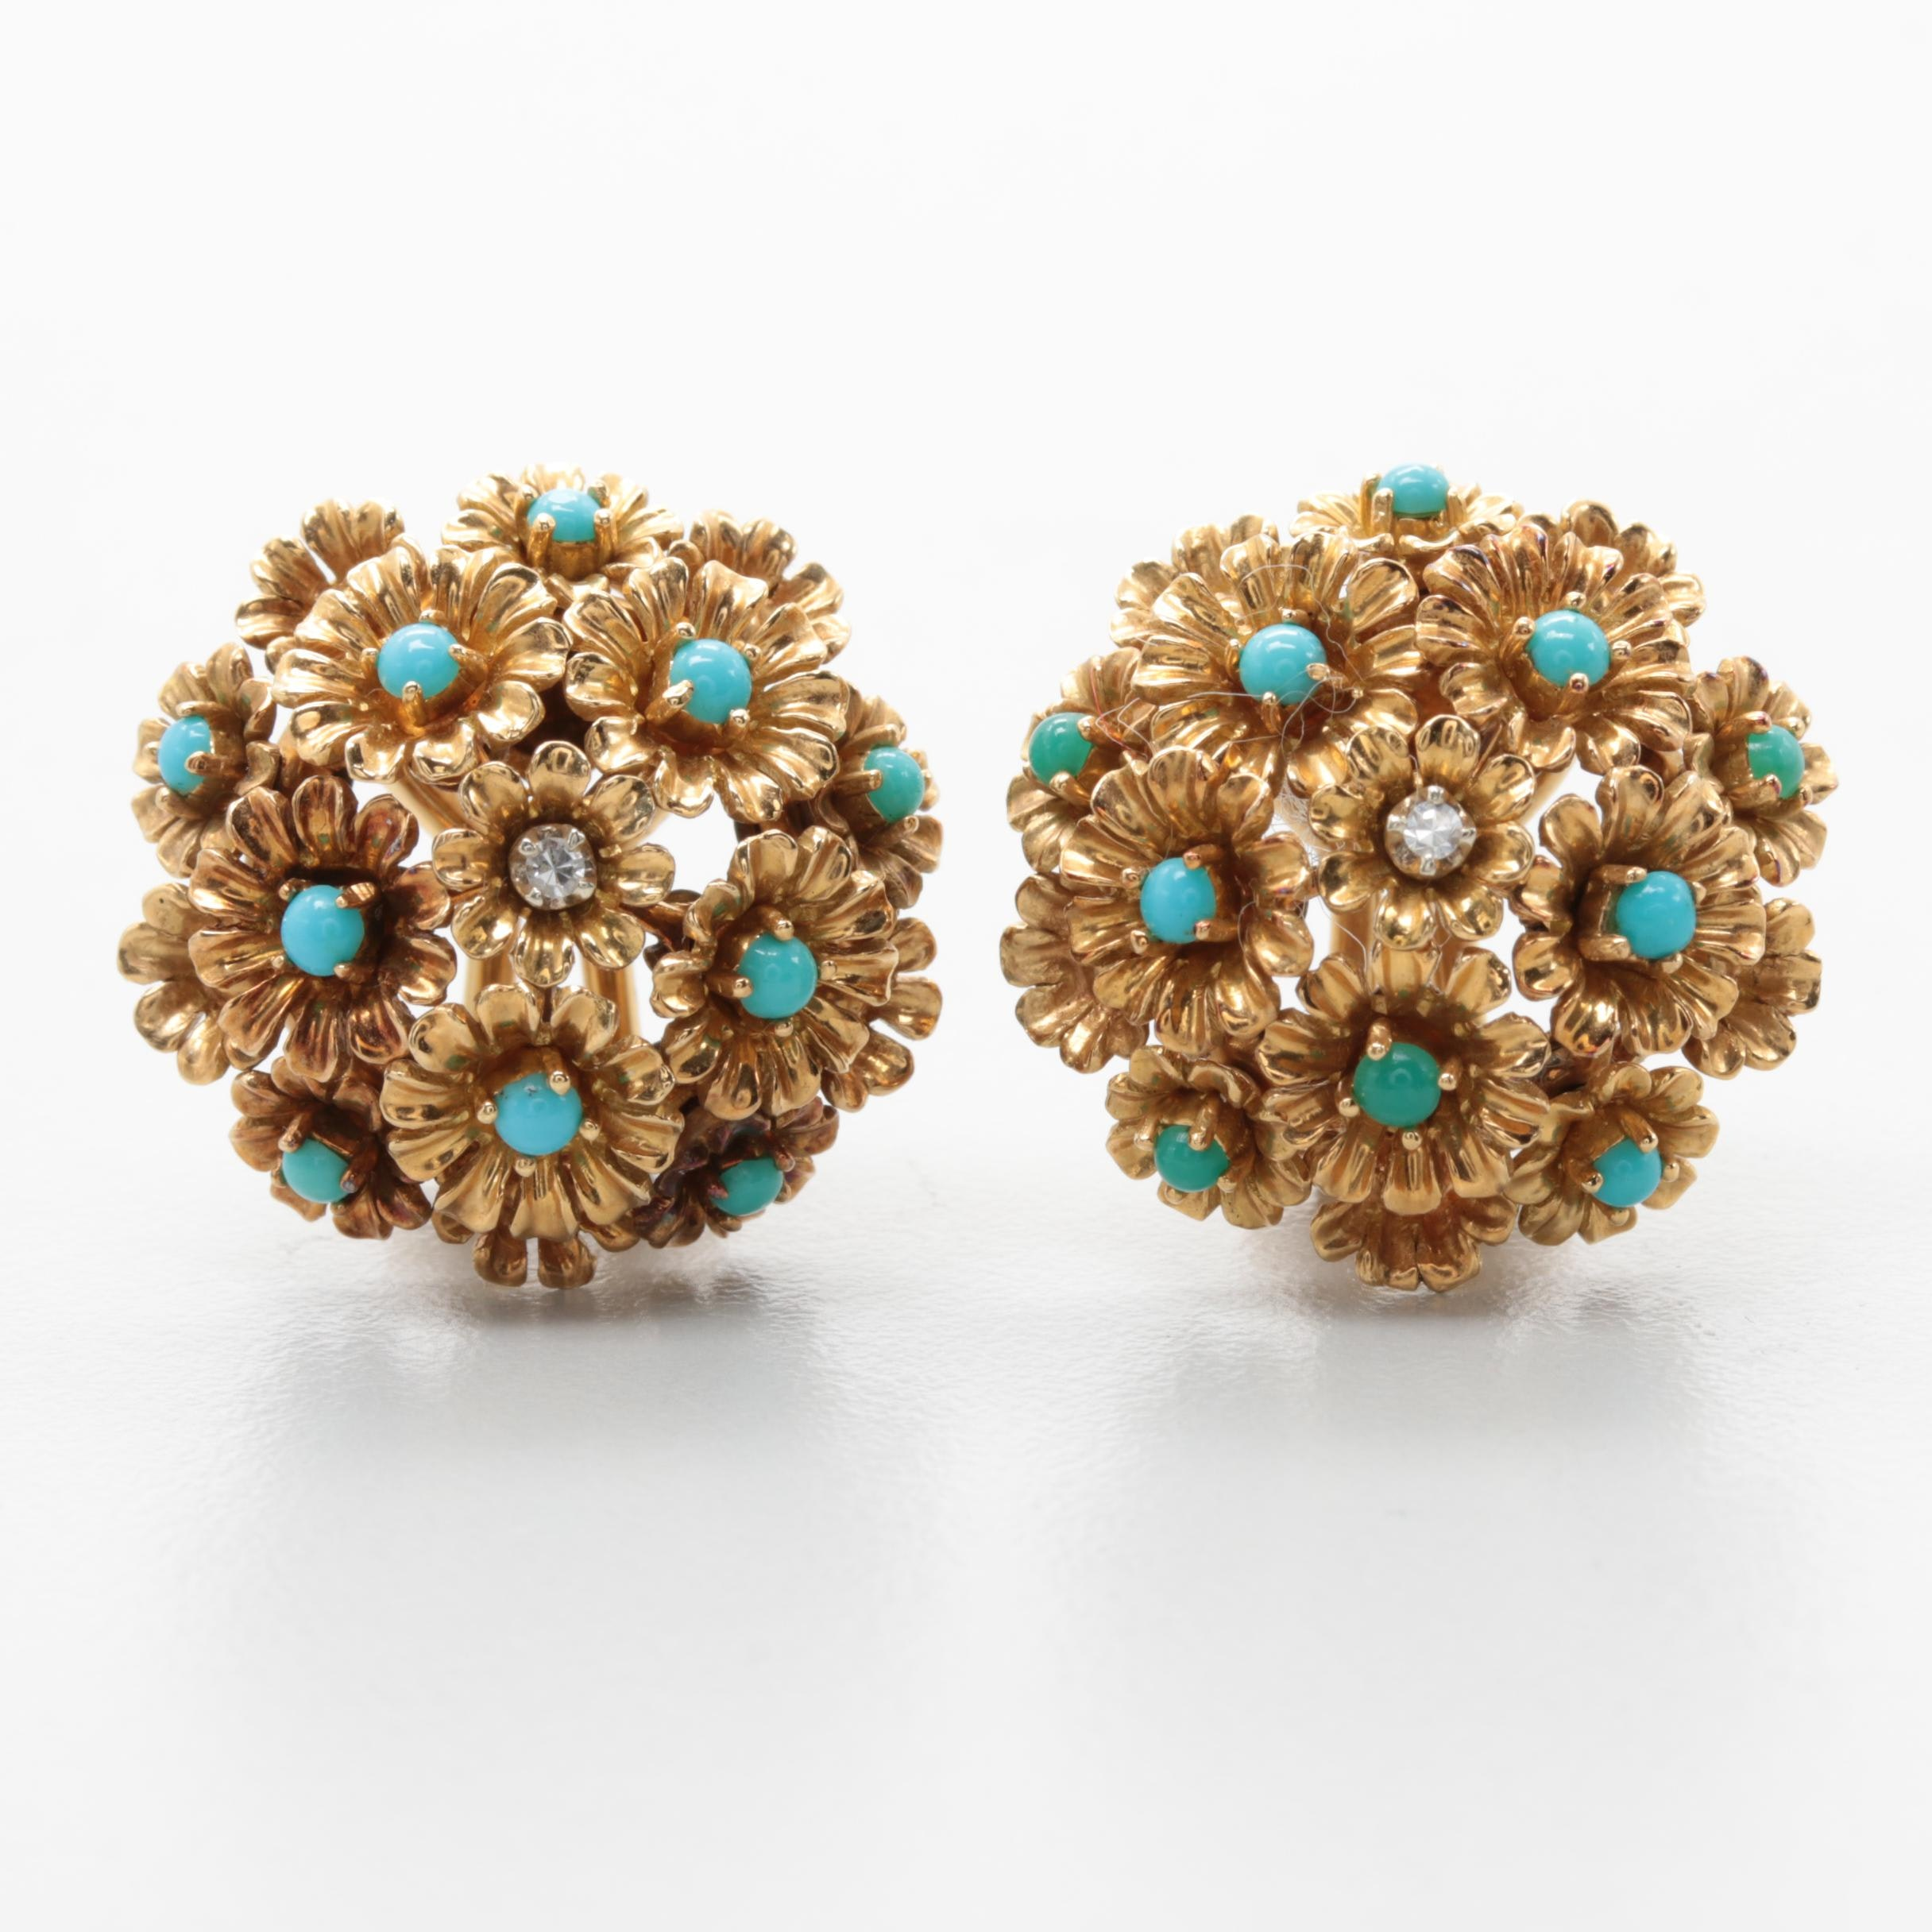 18K Yellow Gold Diamond and Turquoise Floral Omega Back Earrings